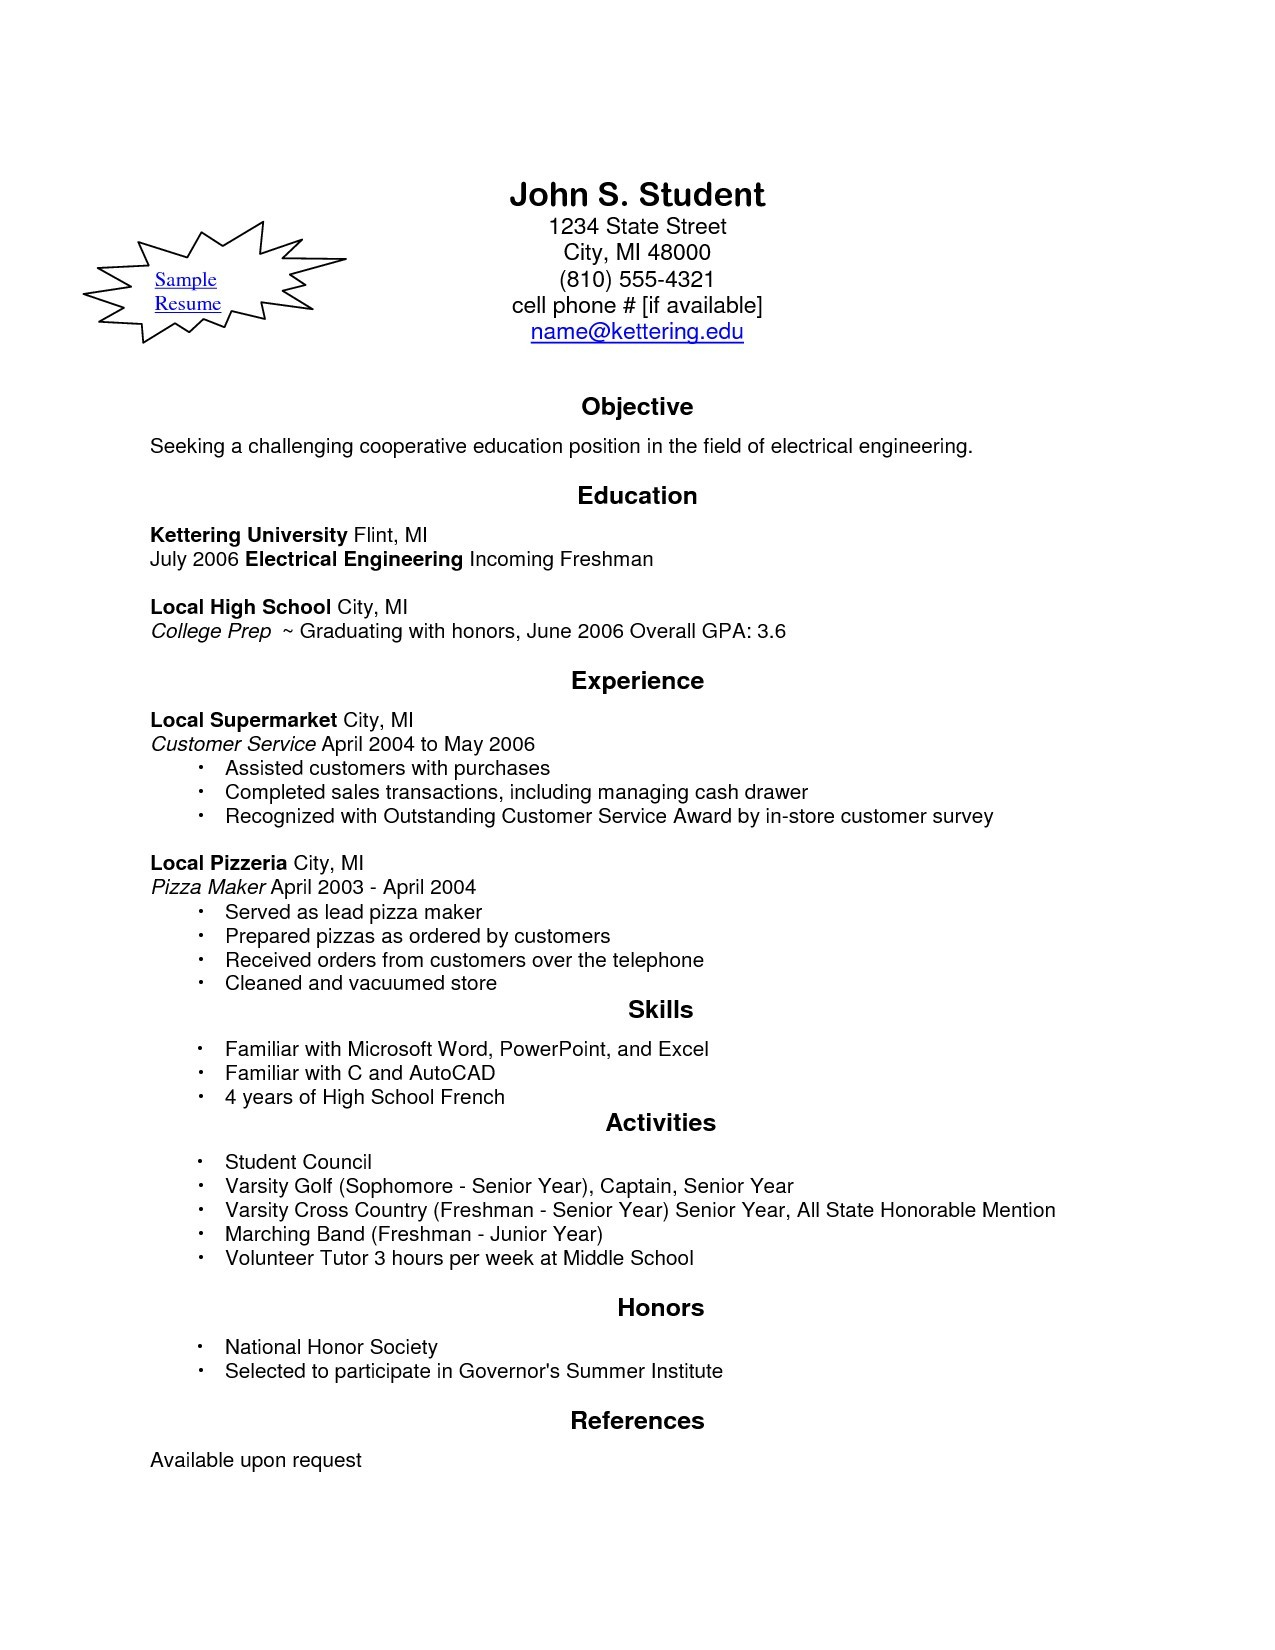 Resume Builder for Highschool Students - Line Resume Builder Unique 23 How Do You Create A Resume